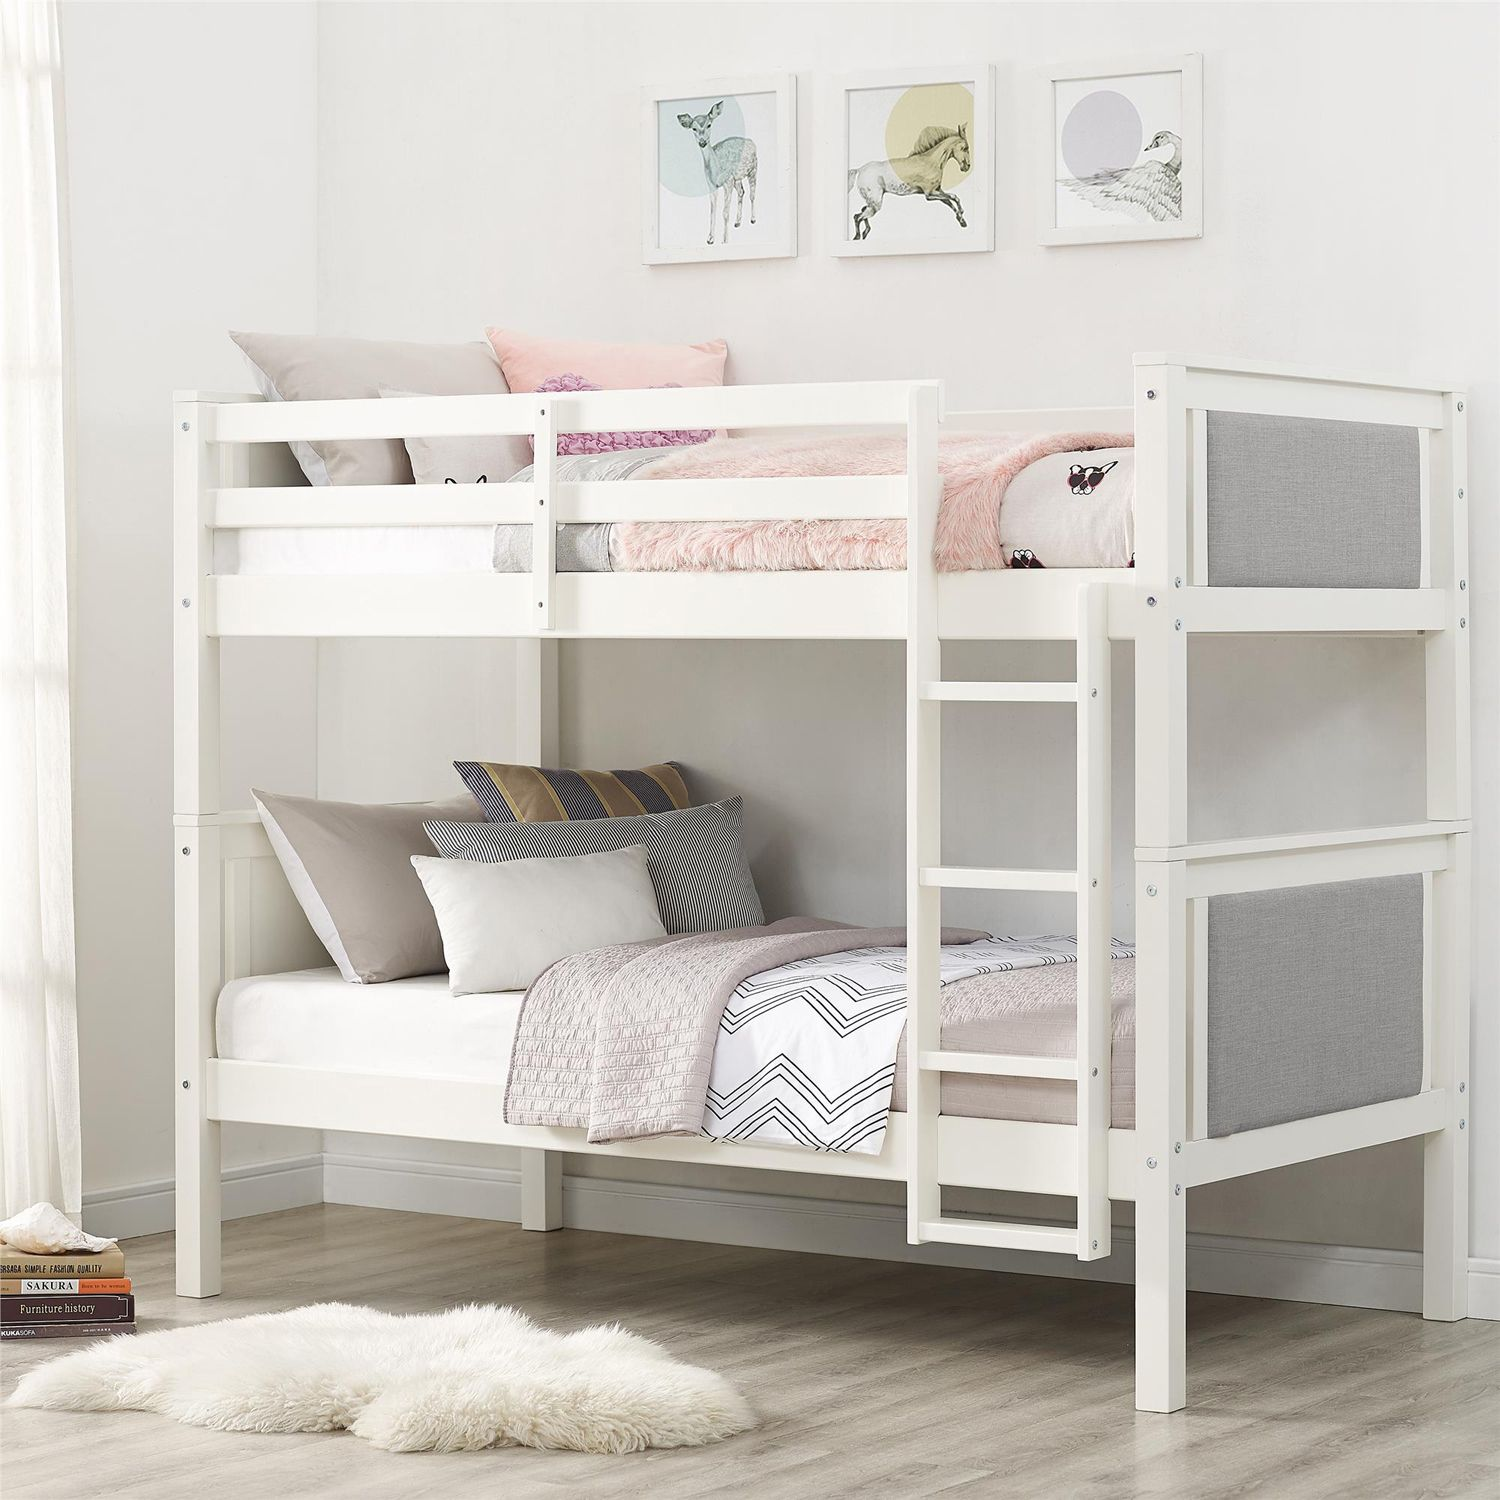 Chesterfield Upholstered Bunk Bed Bunk Beds Rustic Bedroom Room